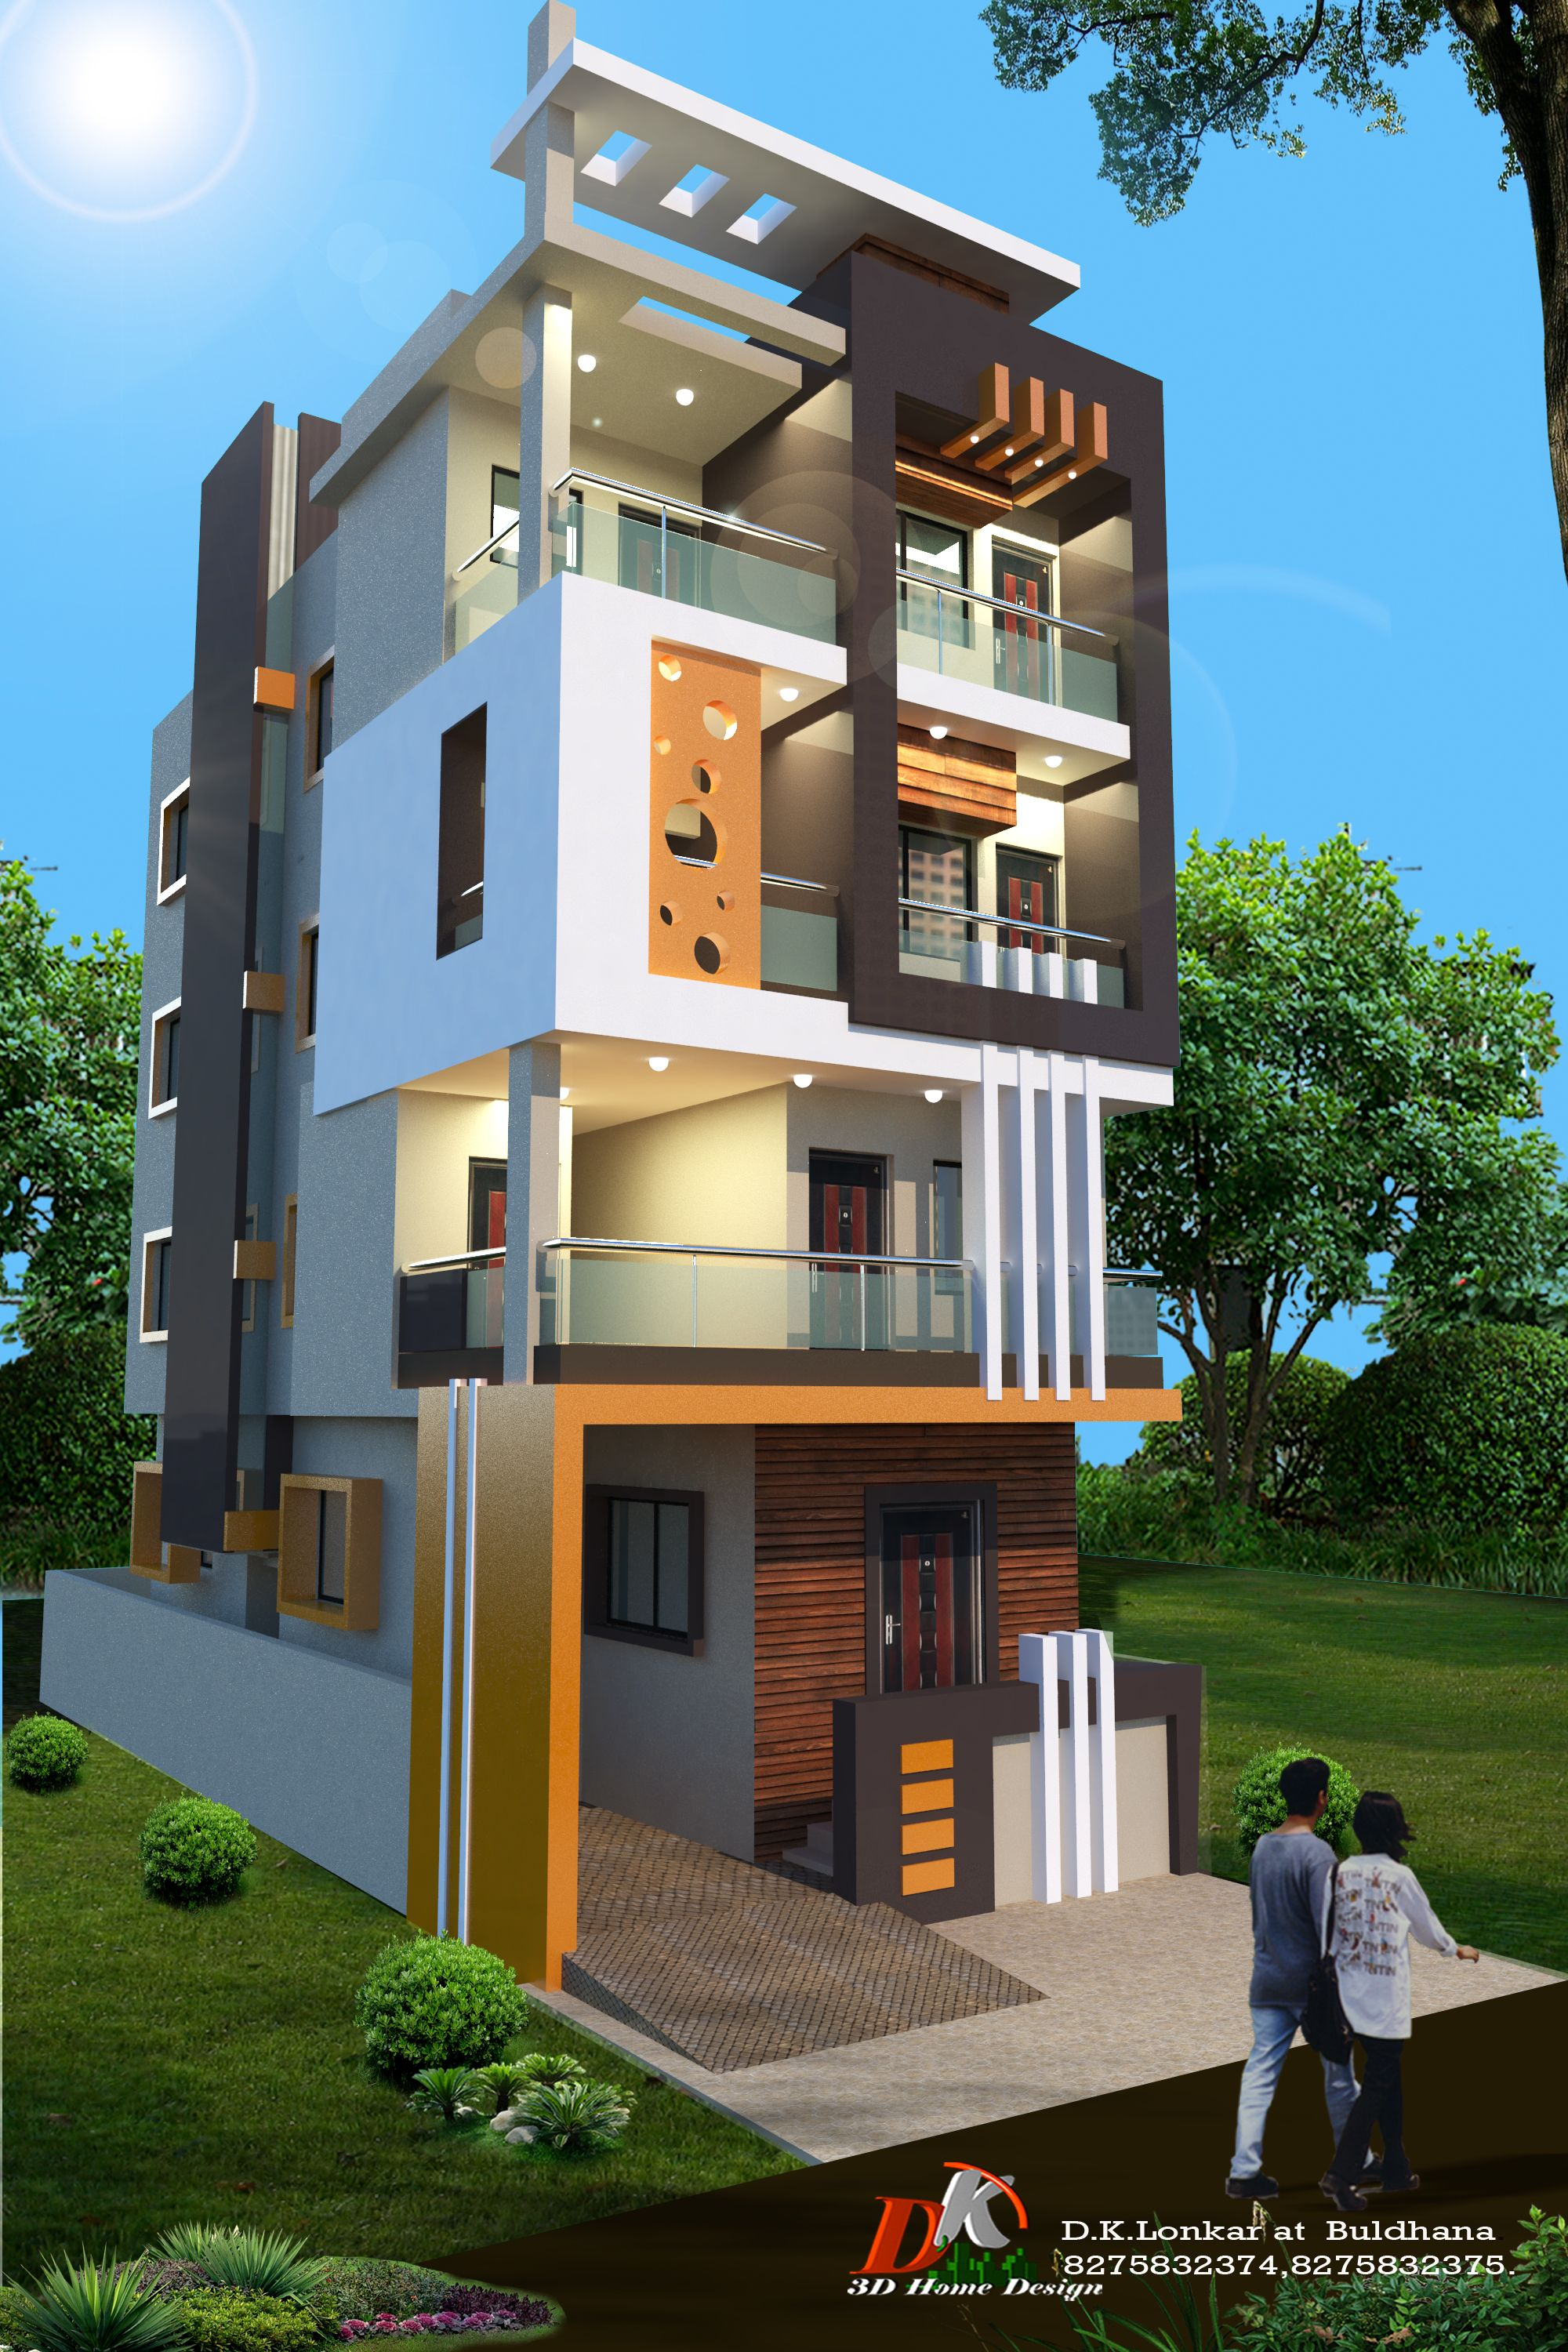 18c9c945d8e3f682b68ad6e97033b00a - 19+ Modern Small House Front Elevation Designs PNG